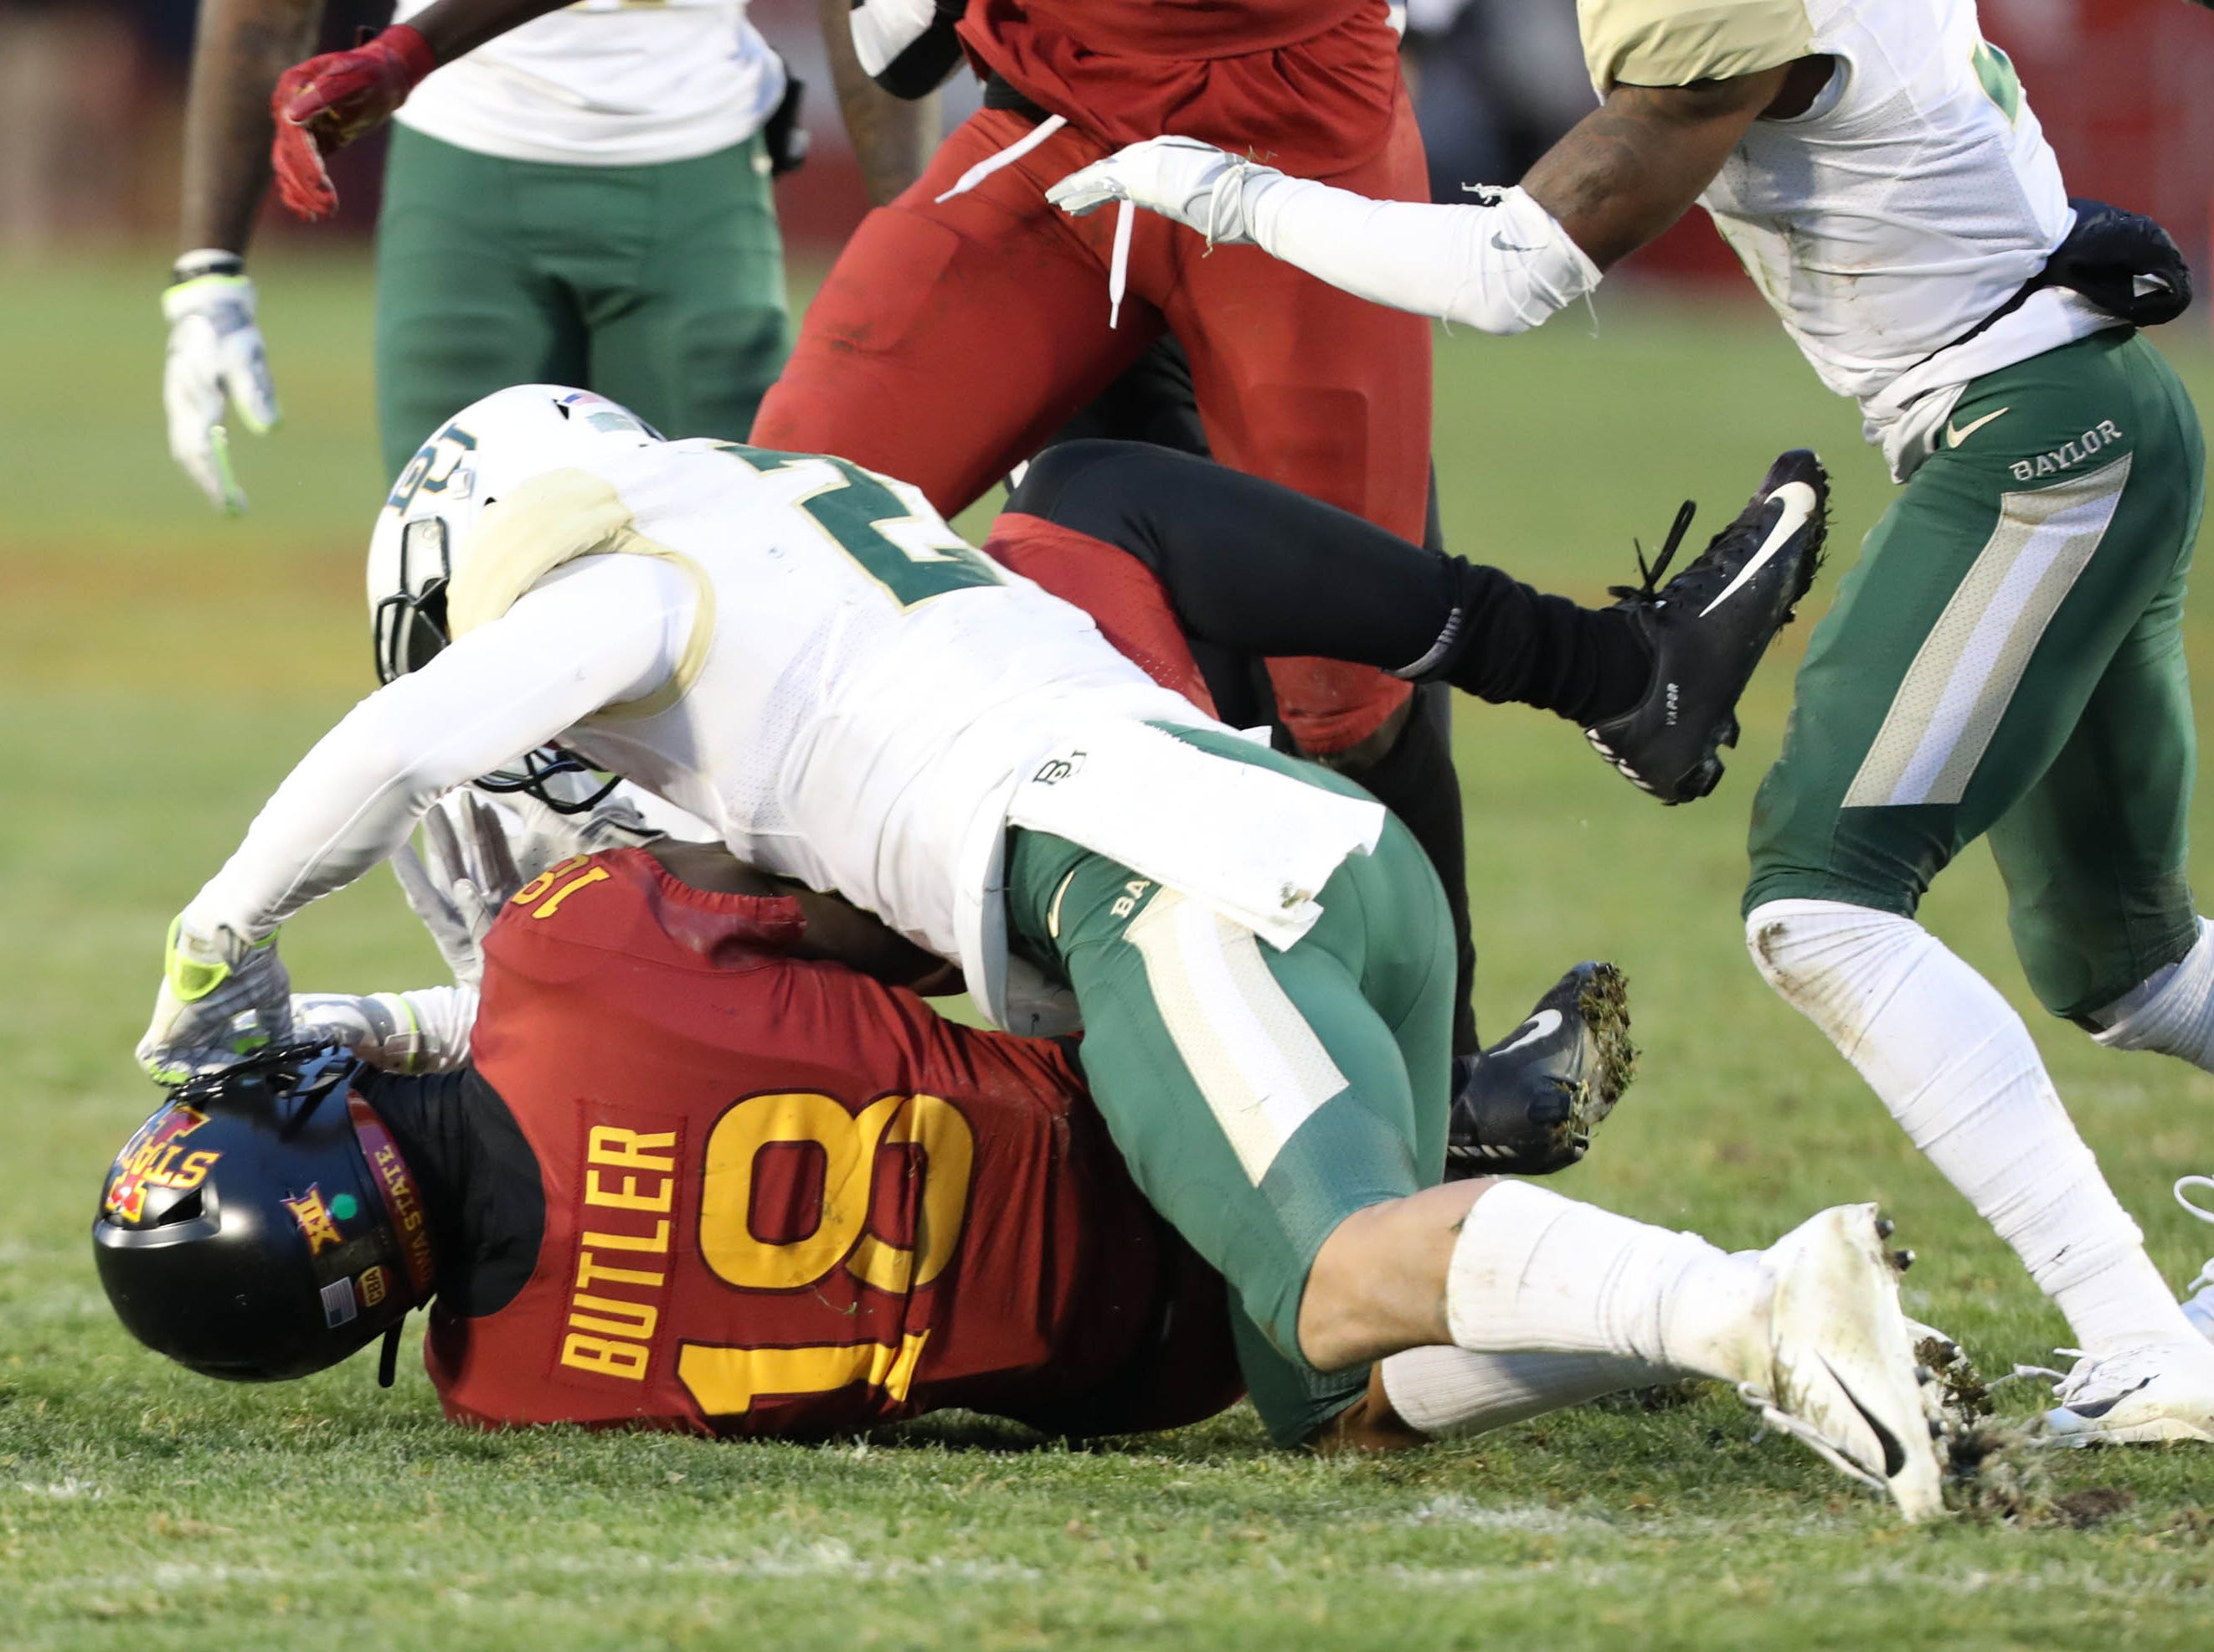 Iowa State Cyclones wide receiver Hakeem Butler (18) and Baylor Bears safety Blake Lynch (21) tangle during a brawl at Jack Trice Stadium.